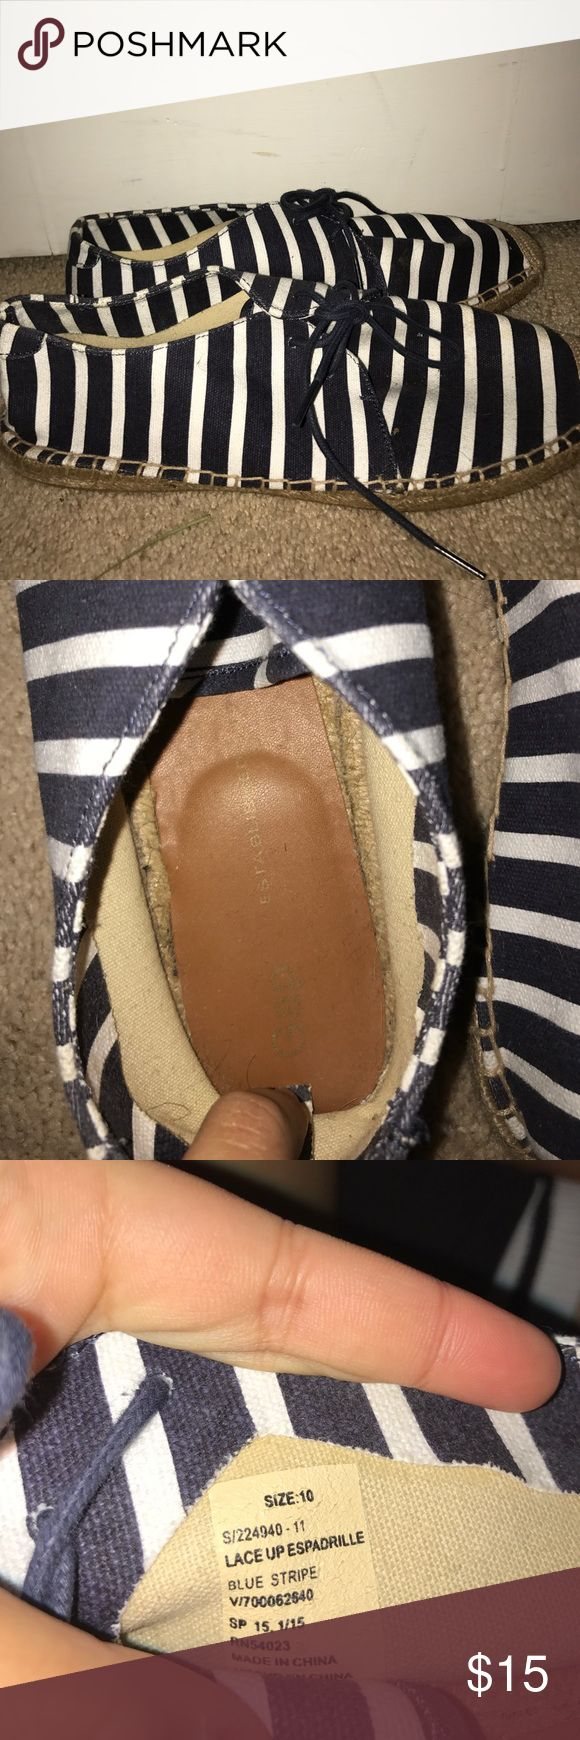 Navy Blue and White Gap Espadrilles Never Worn Espadrille shoes from gap. Never really had anything to wear them w/ so theres no need for them to sit in my closet. No signs of wear, tear, or any damages. GAP Shoes Espadrilles